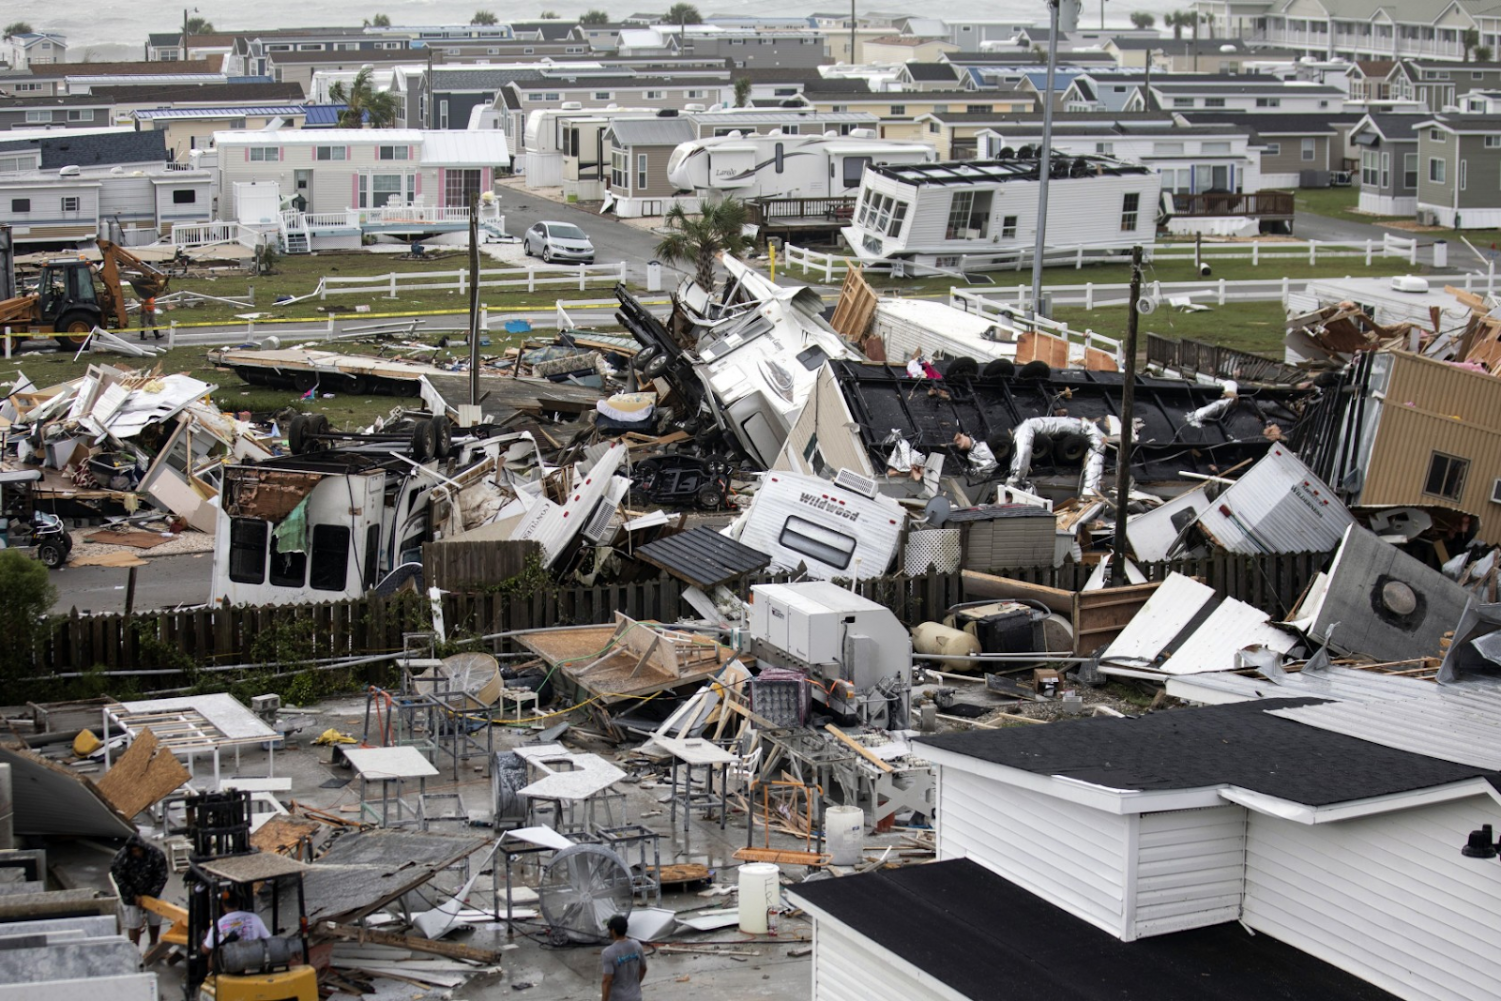 Damages caused by Dorian on a small Island on the coast of North Carolina. Photo Credit: Los Angeles Times